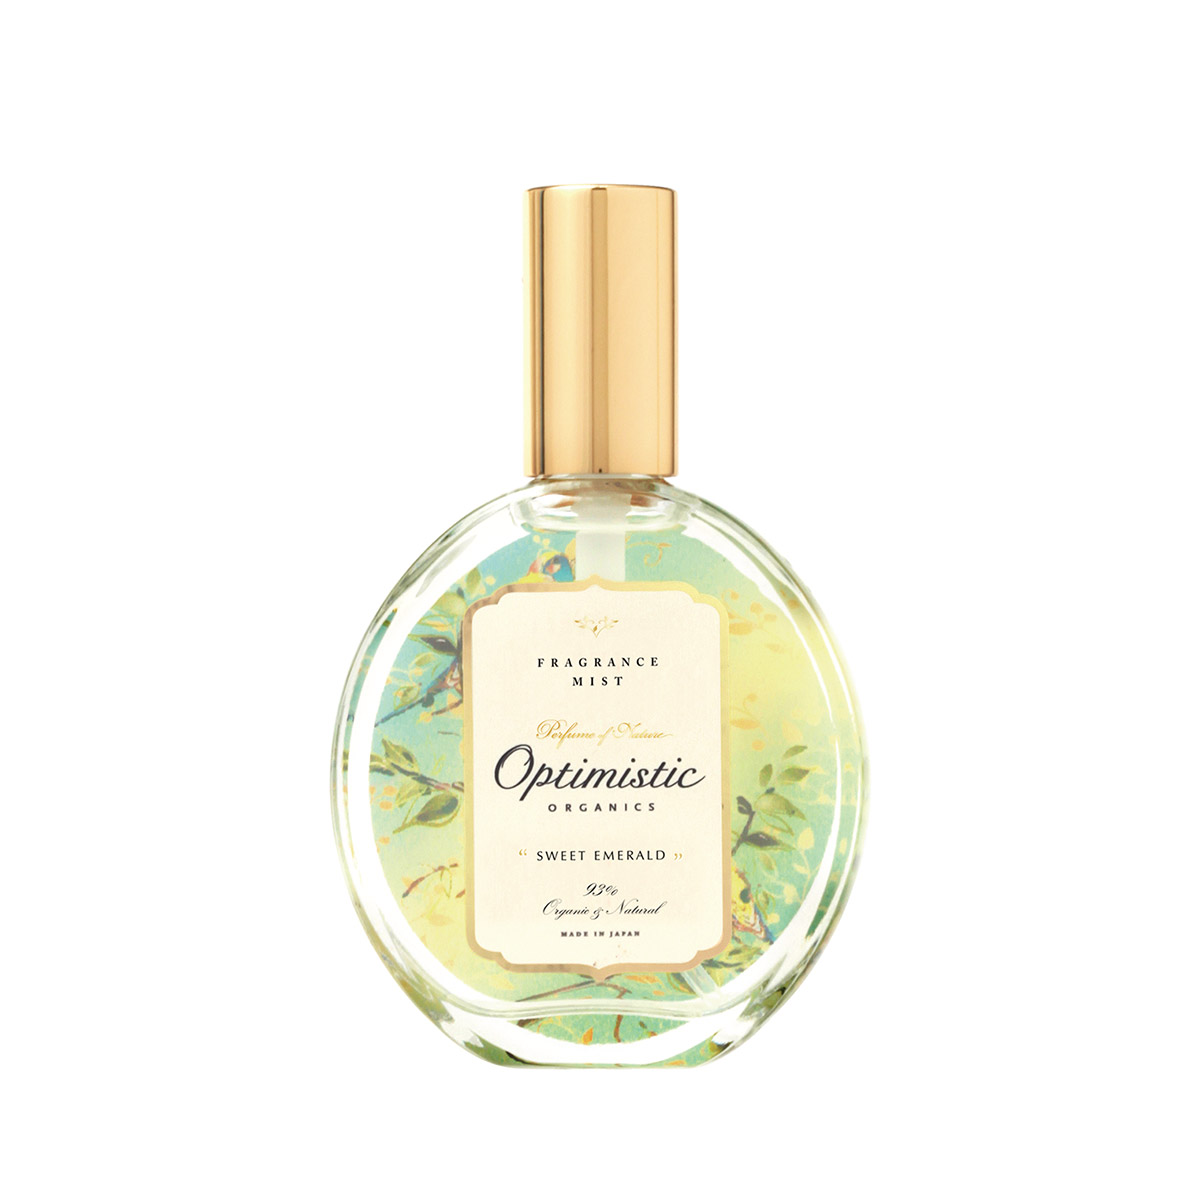 'Sweet Emerald' Fragrance Mist